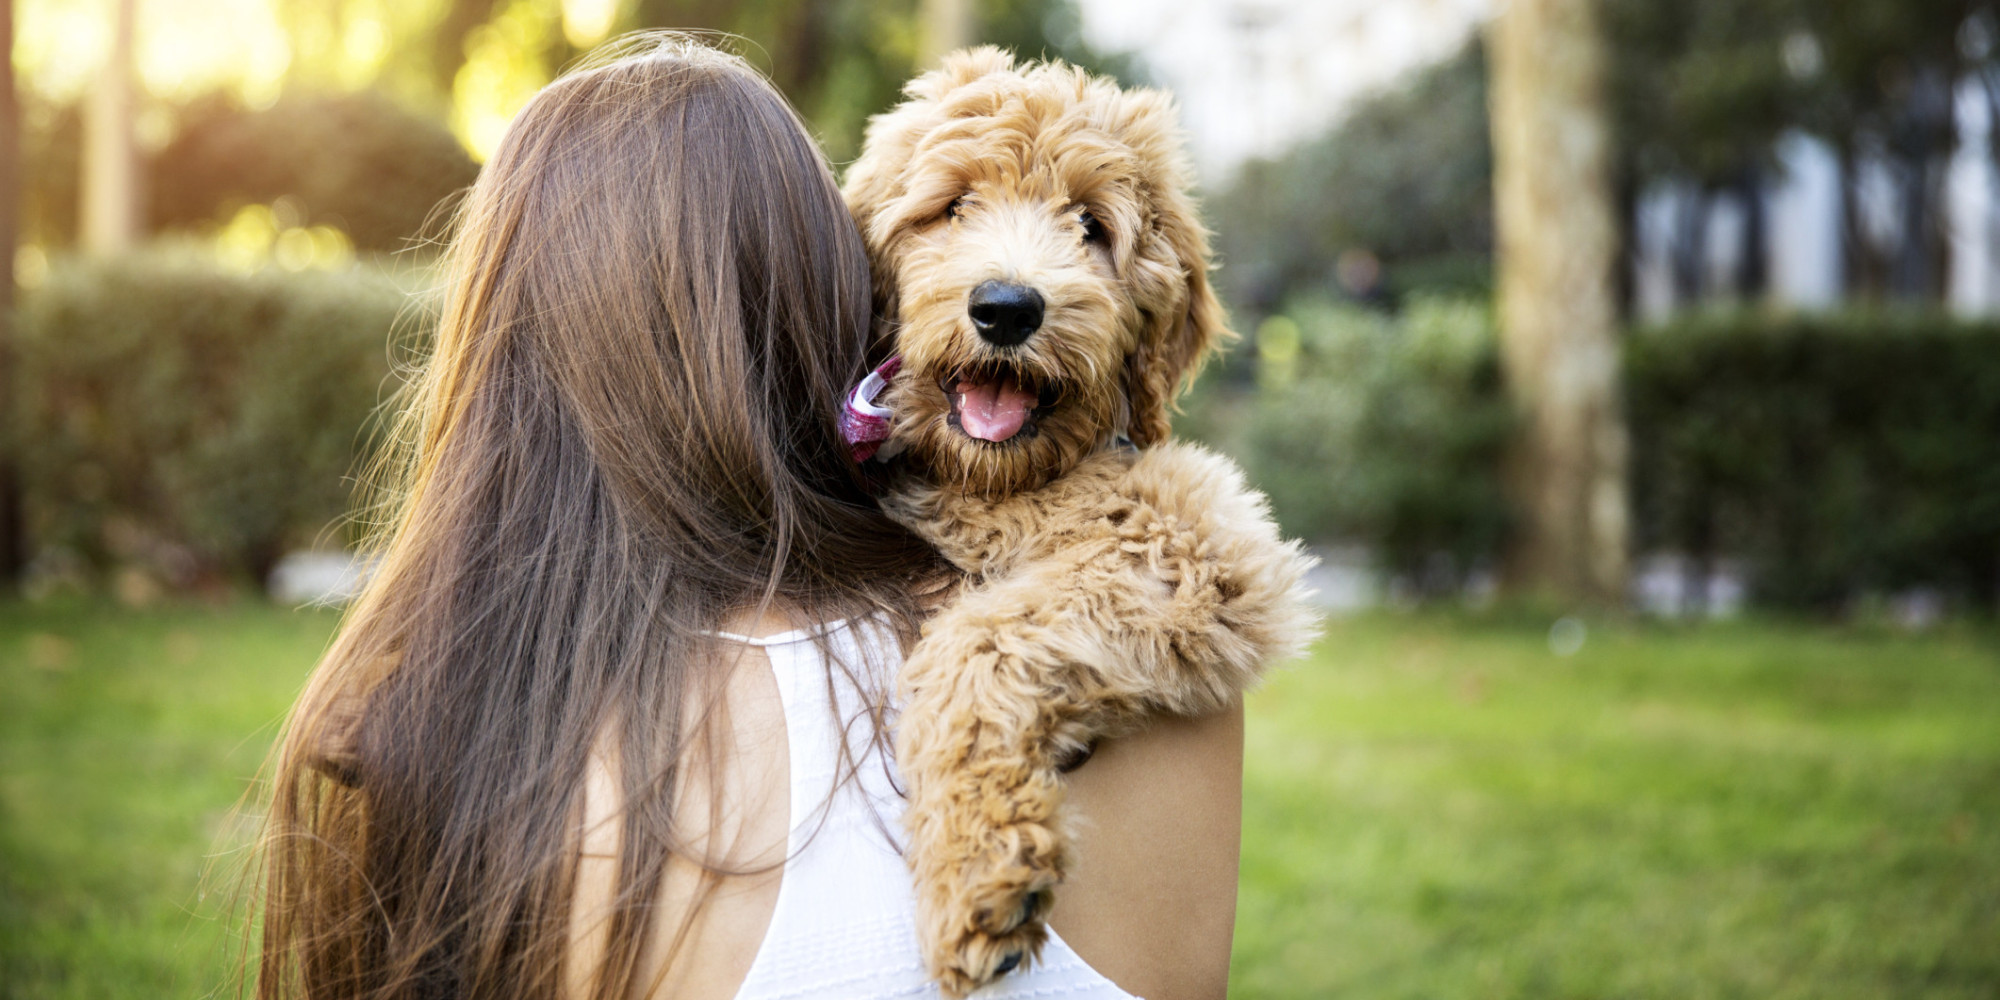 10 Things Dogs Teach Us About What Matters Most